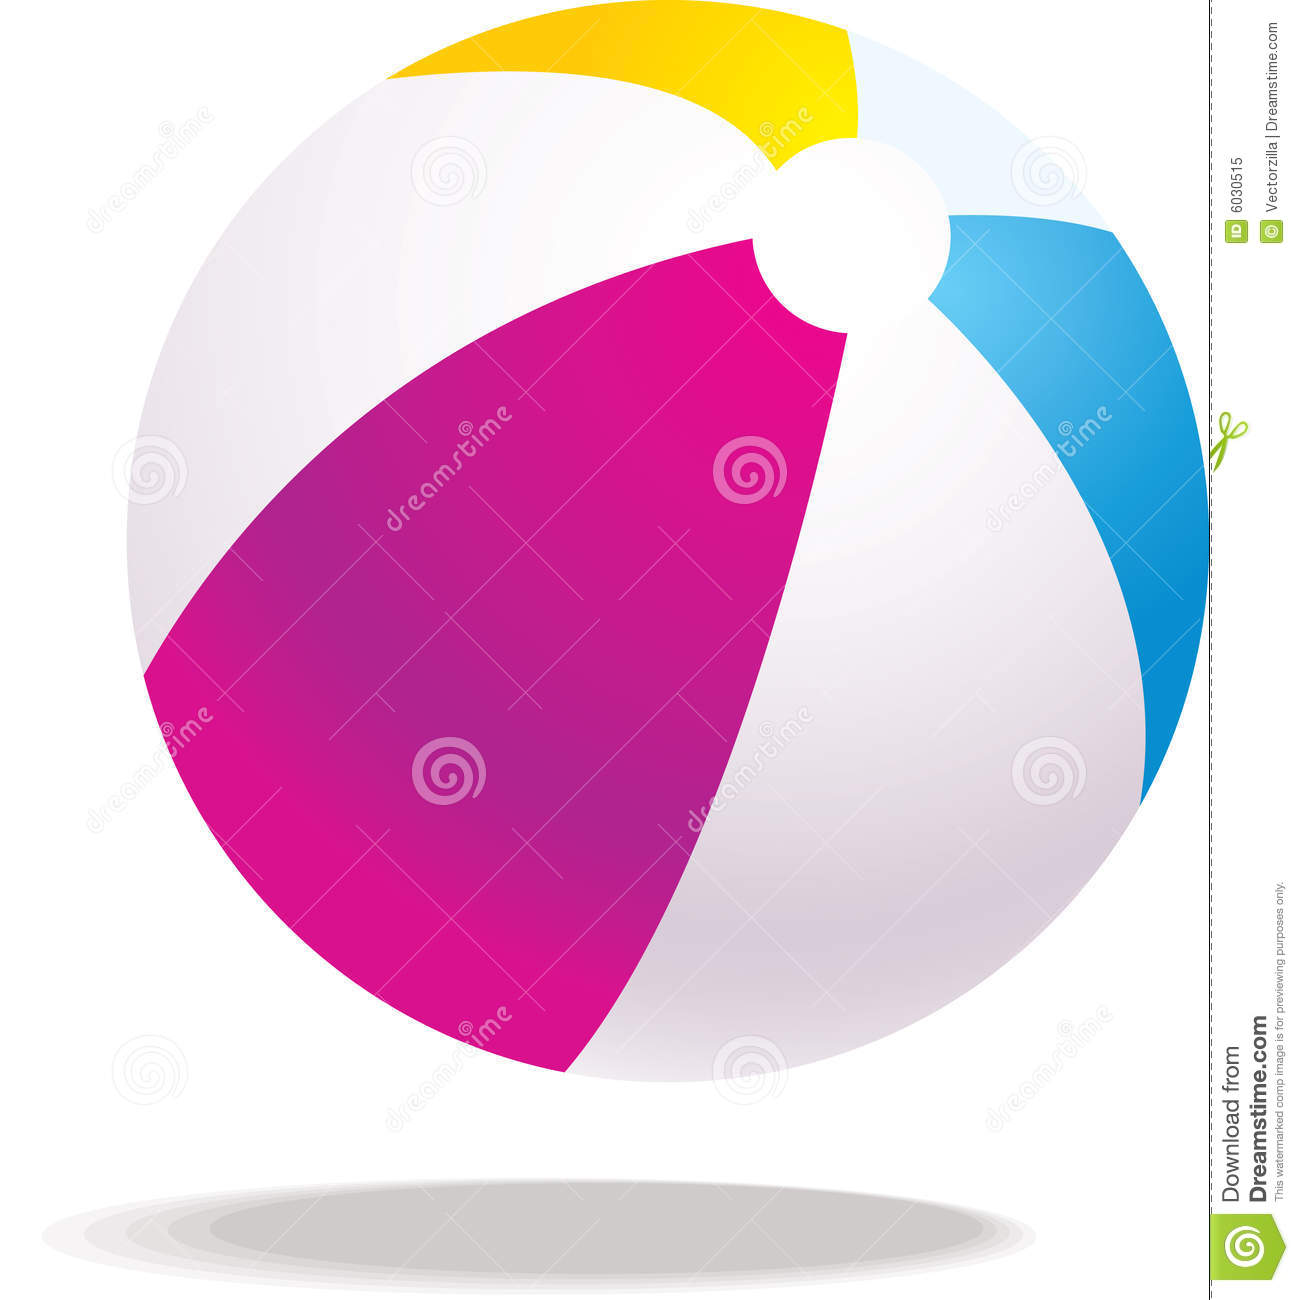 Vector Beach Ball Illustration Royalty Free Stock Photo   Image